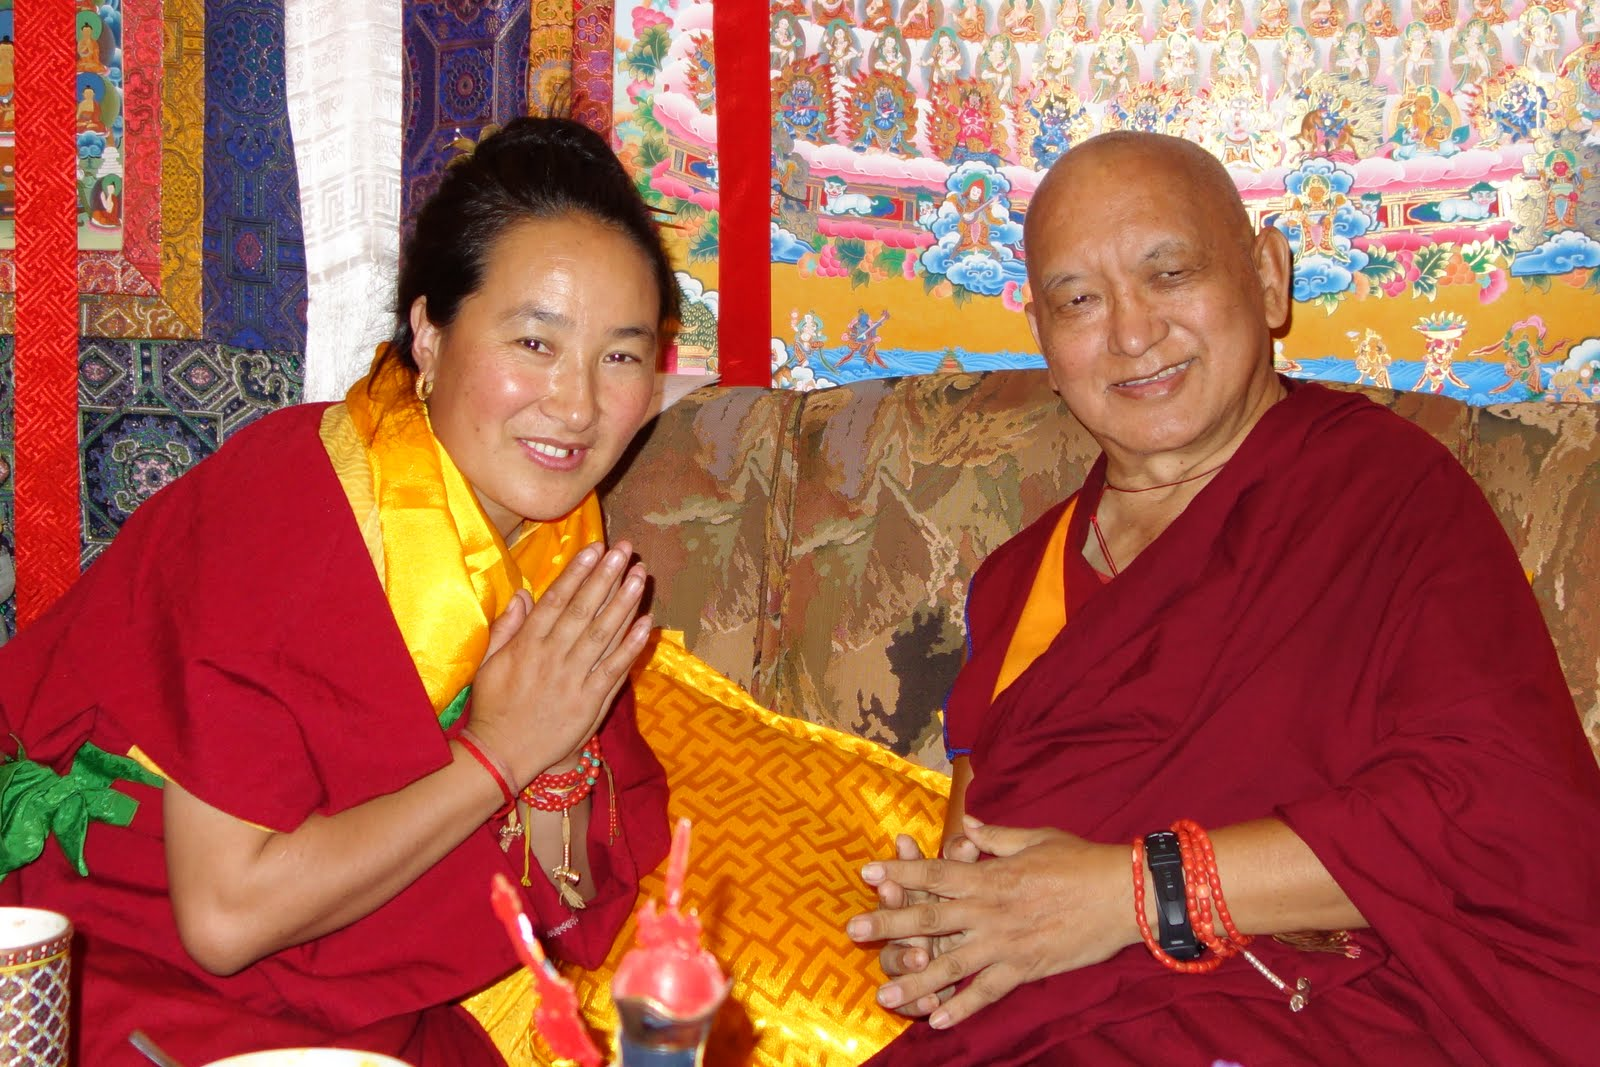 Rinpoche and Khadro-la discussing at Kopan Monastery. Photo Ven. Roger Kunsang